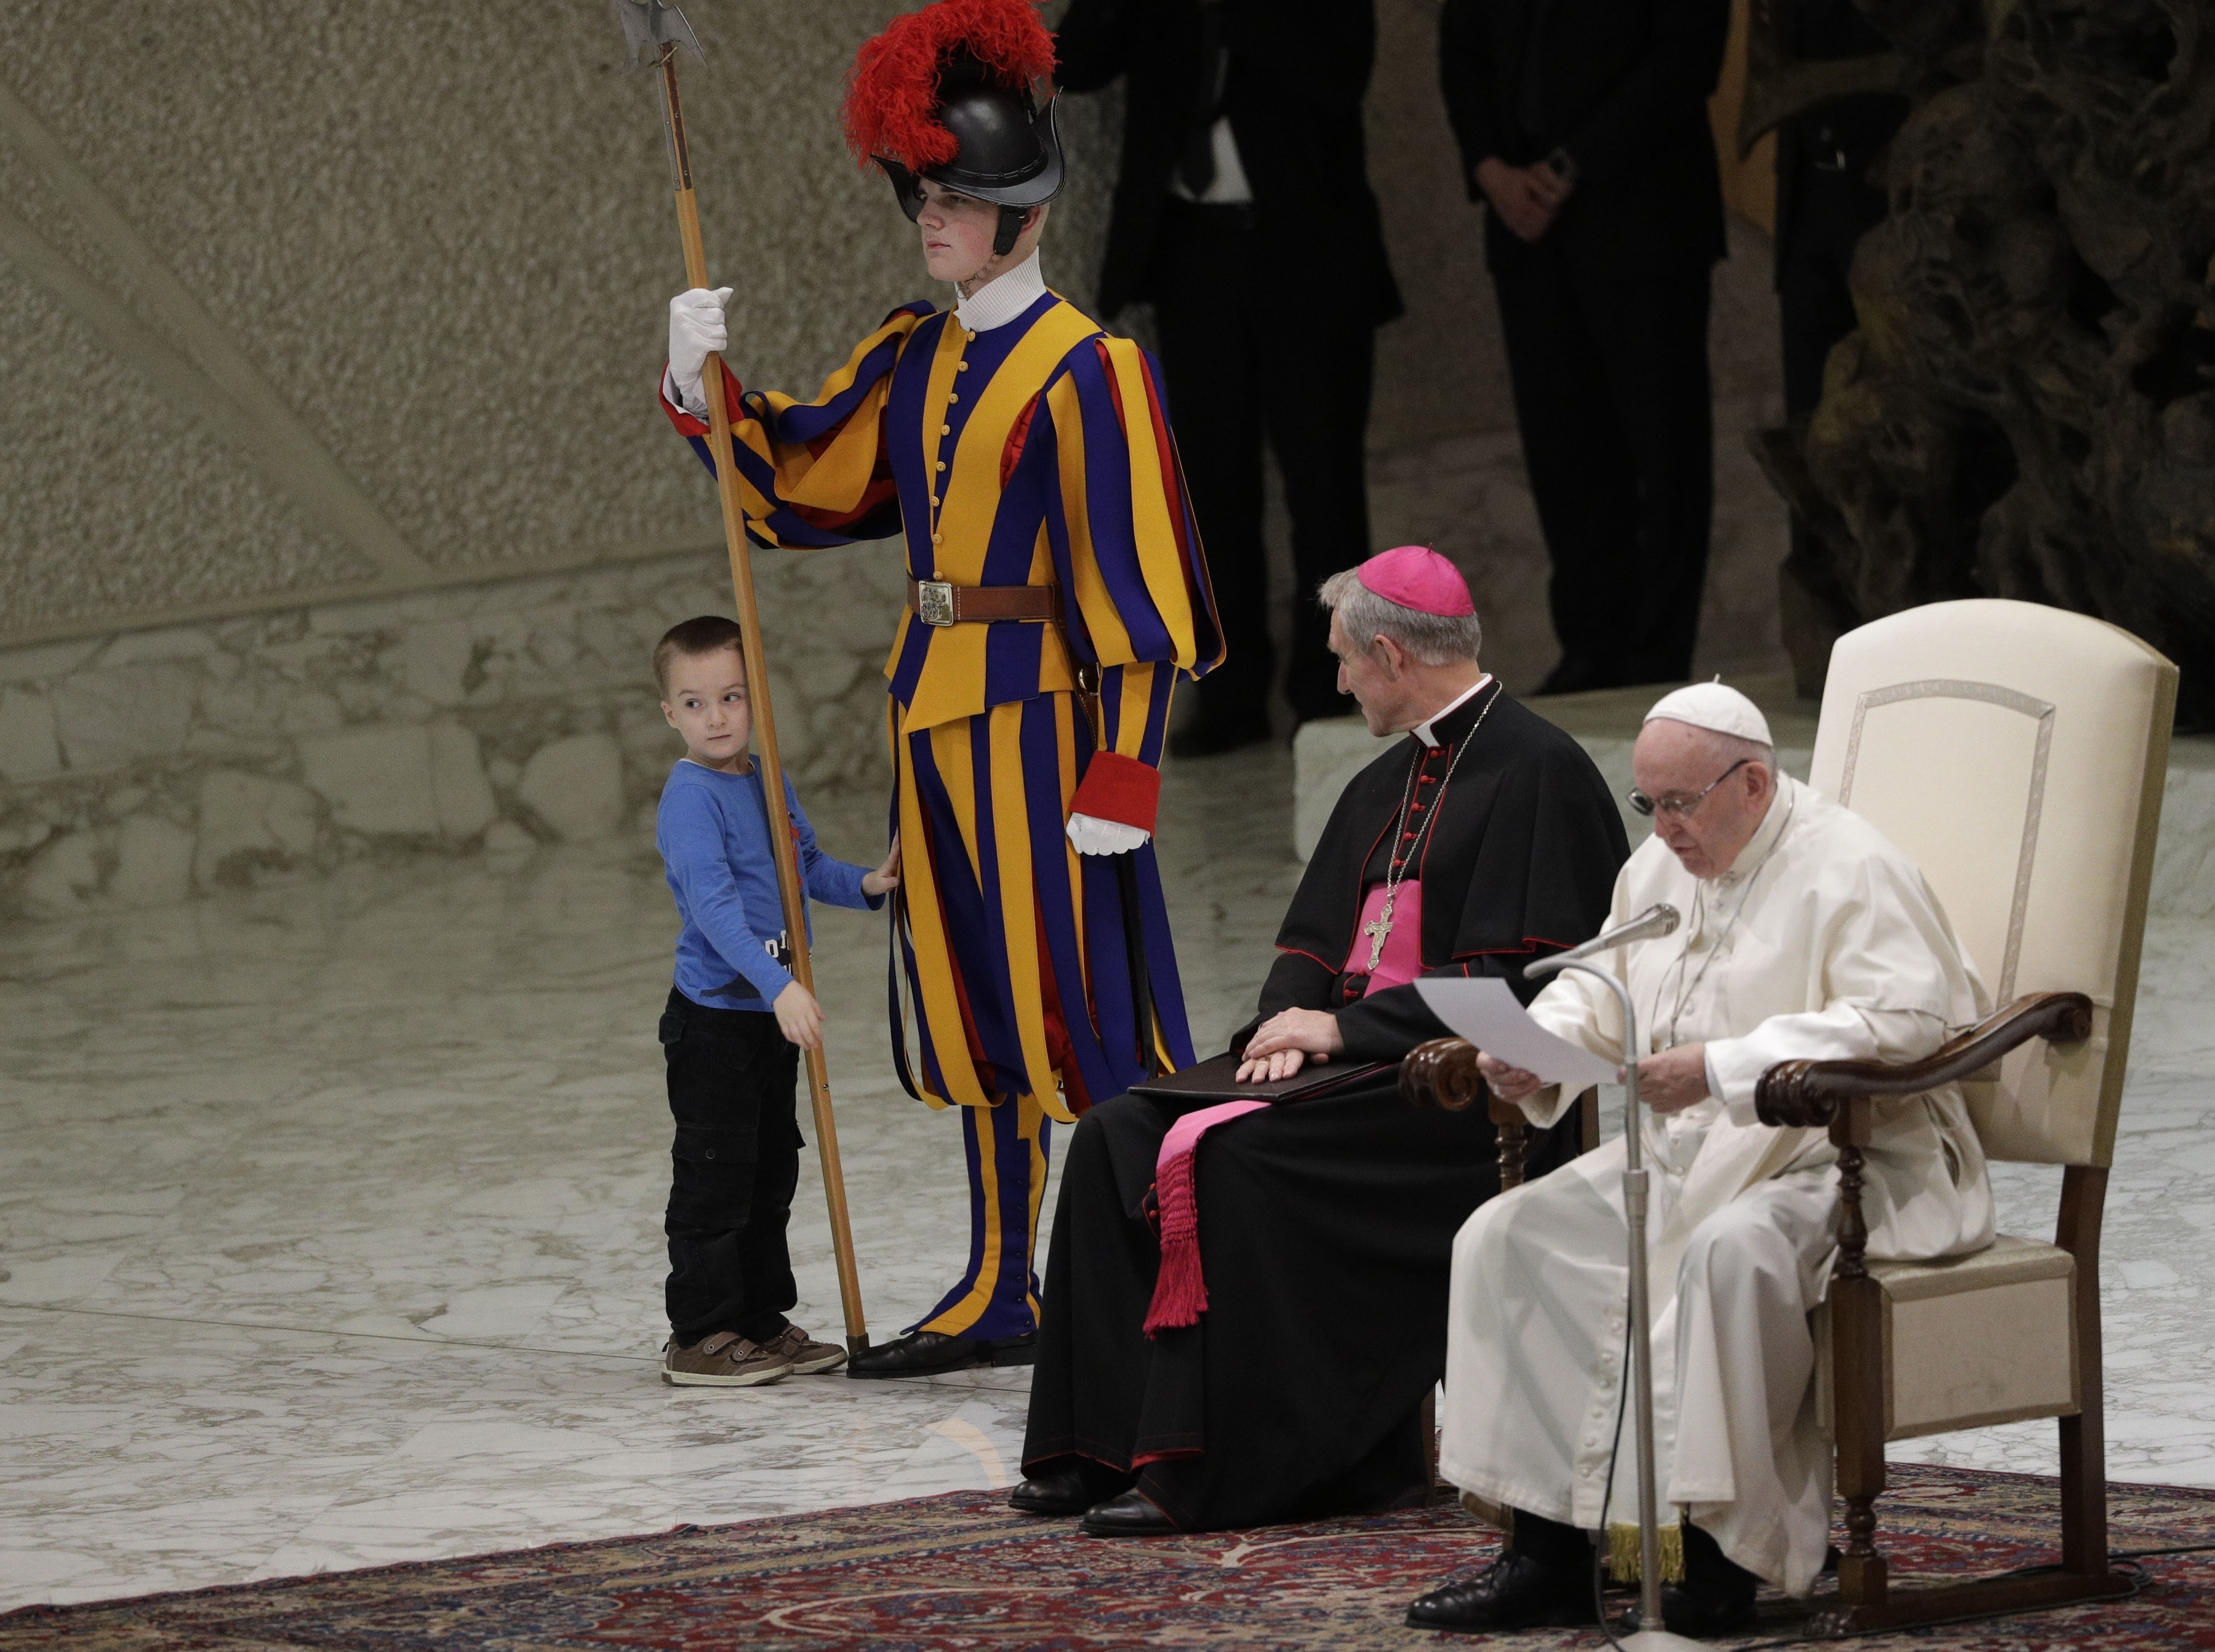 The child looks back at the audience in the Vatican hall